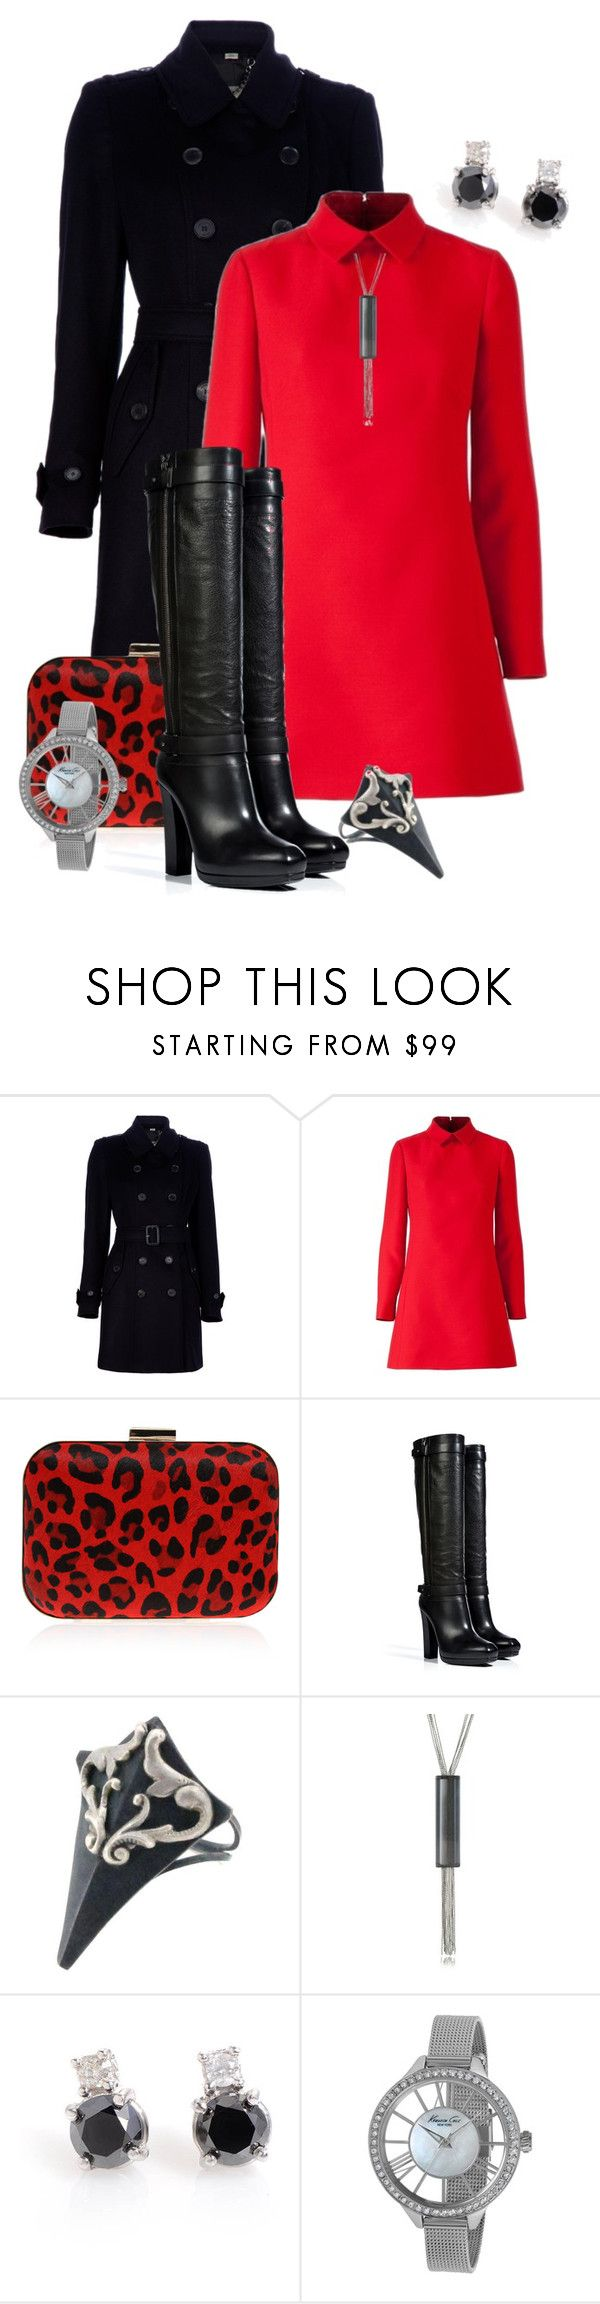 """""""Untitled #97"""" by darksyngr ❤ liked on Polyvore featuring Burberry, Carvela Kurt Geiger, Belstaff, Sian Bostwick Jewellery, MM6 Maison Margiela and Kenneth Cole"""